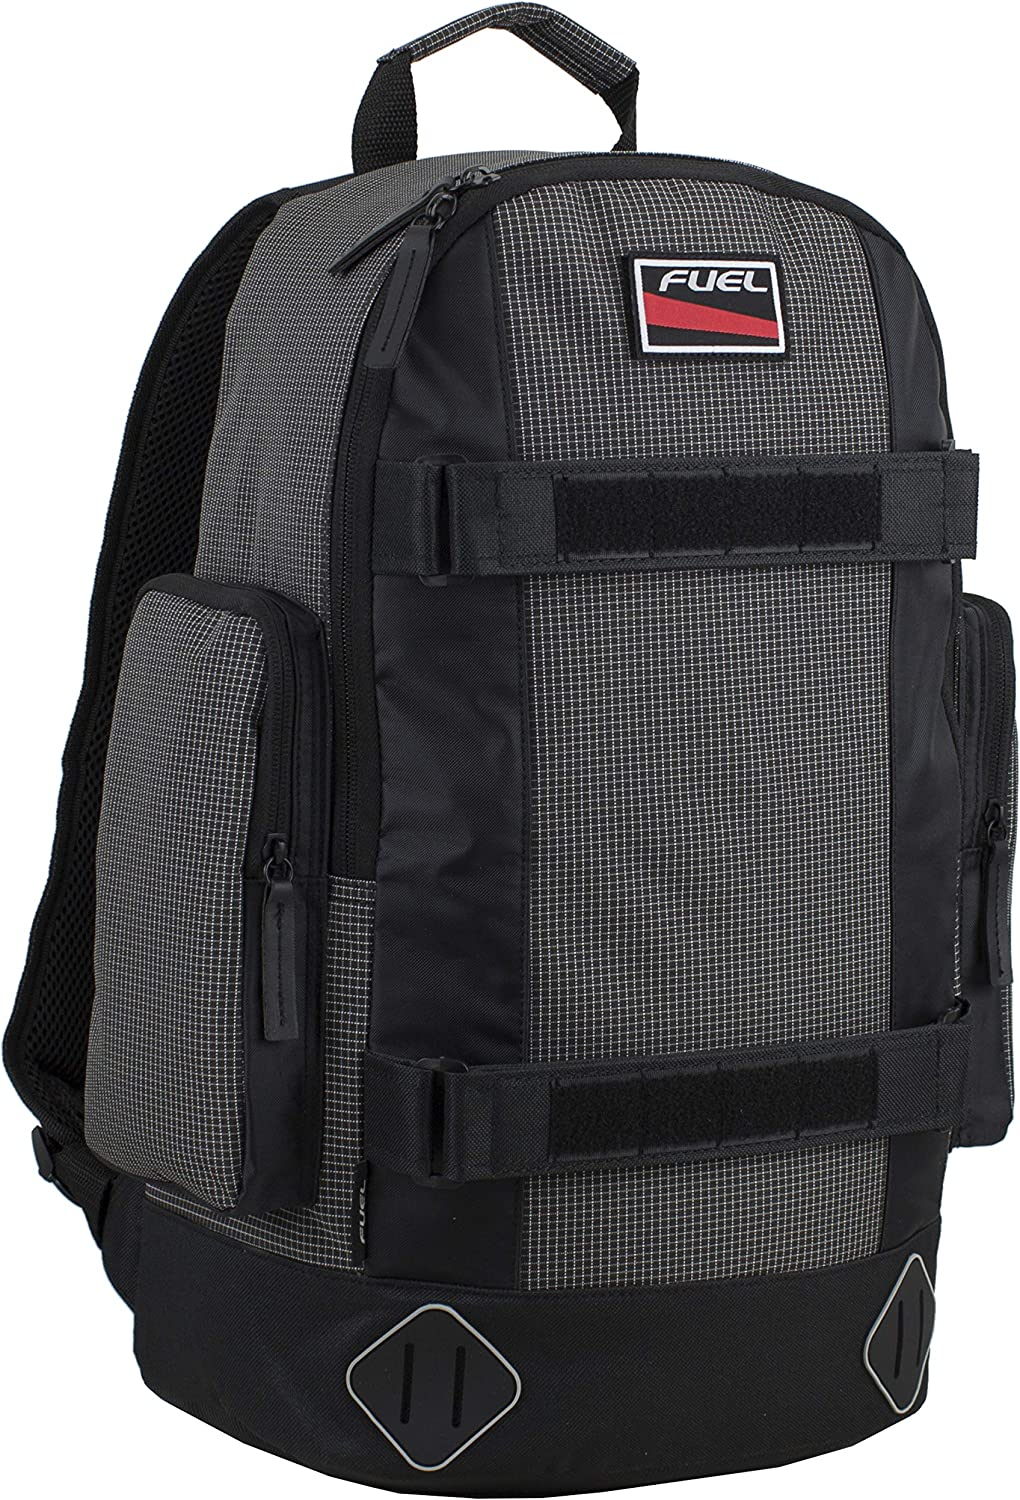 Fuel Pro Skater Backpack